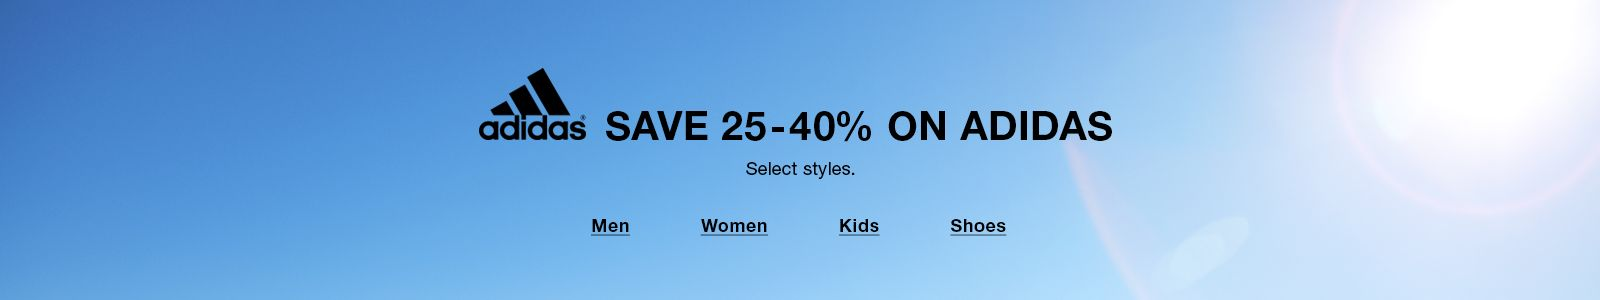 Save 25-40 percent on Adidas, Select styles, Men, Women, Kids, Shoes